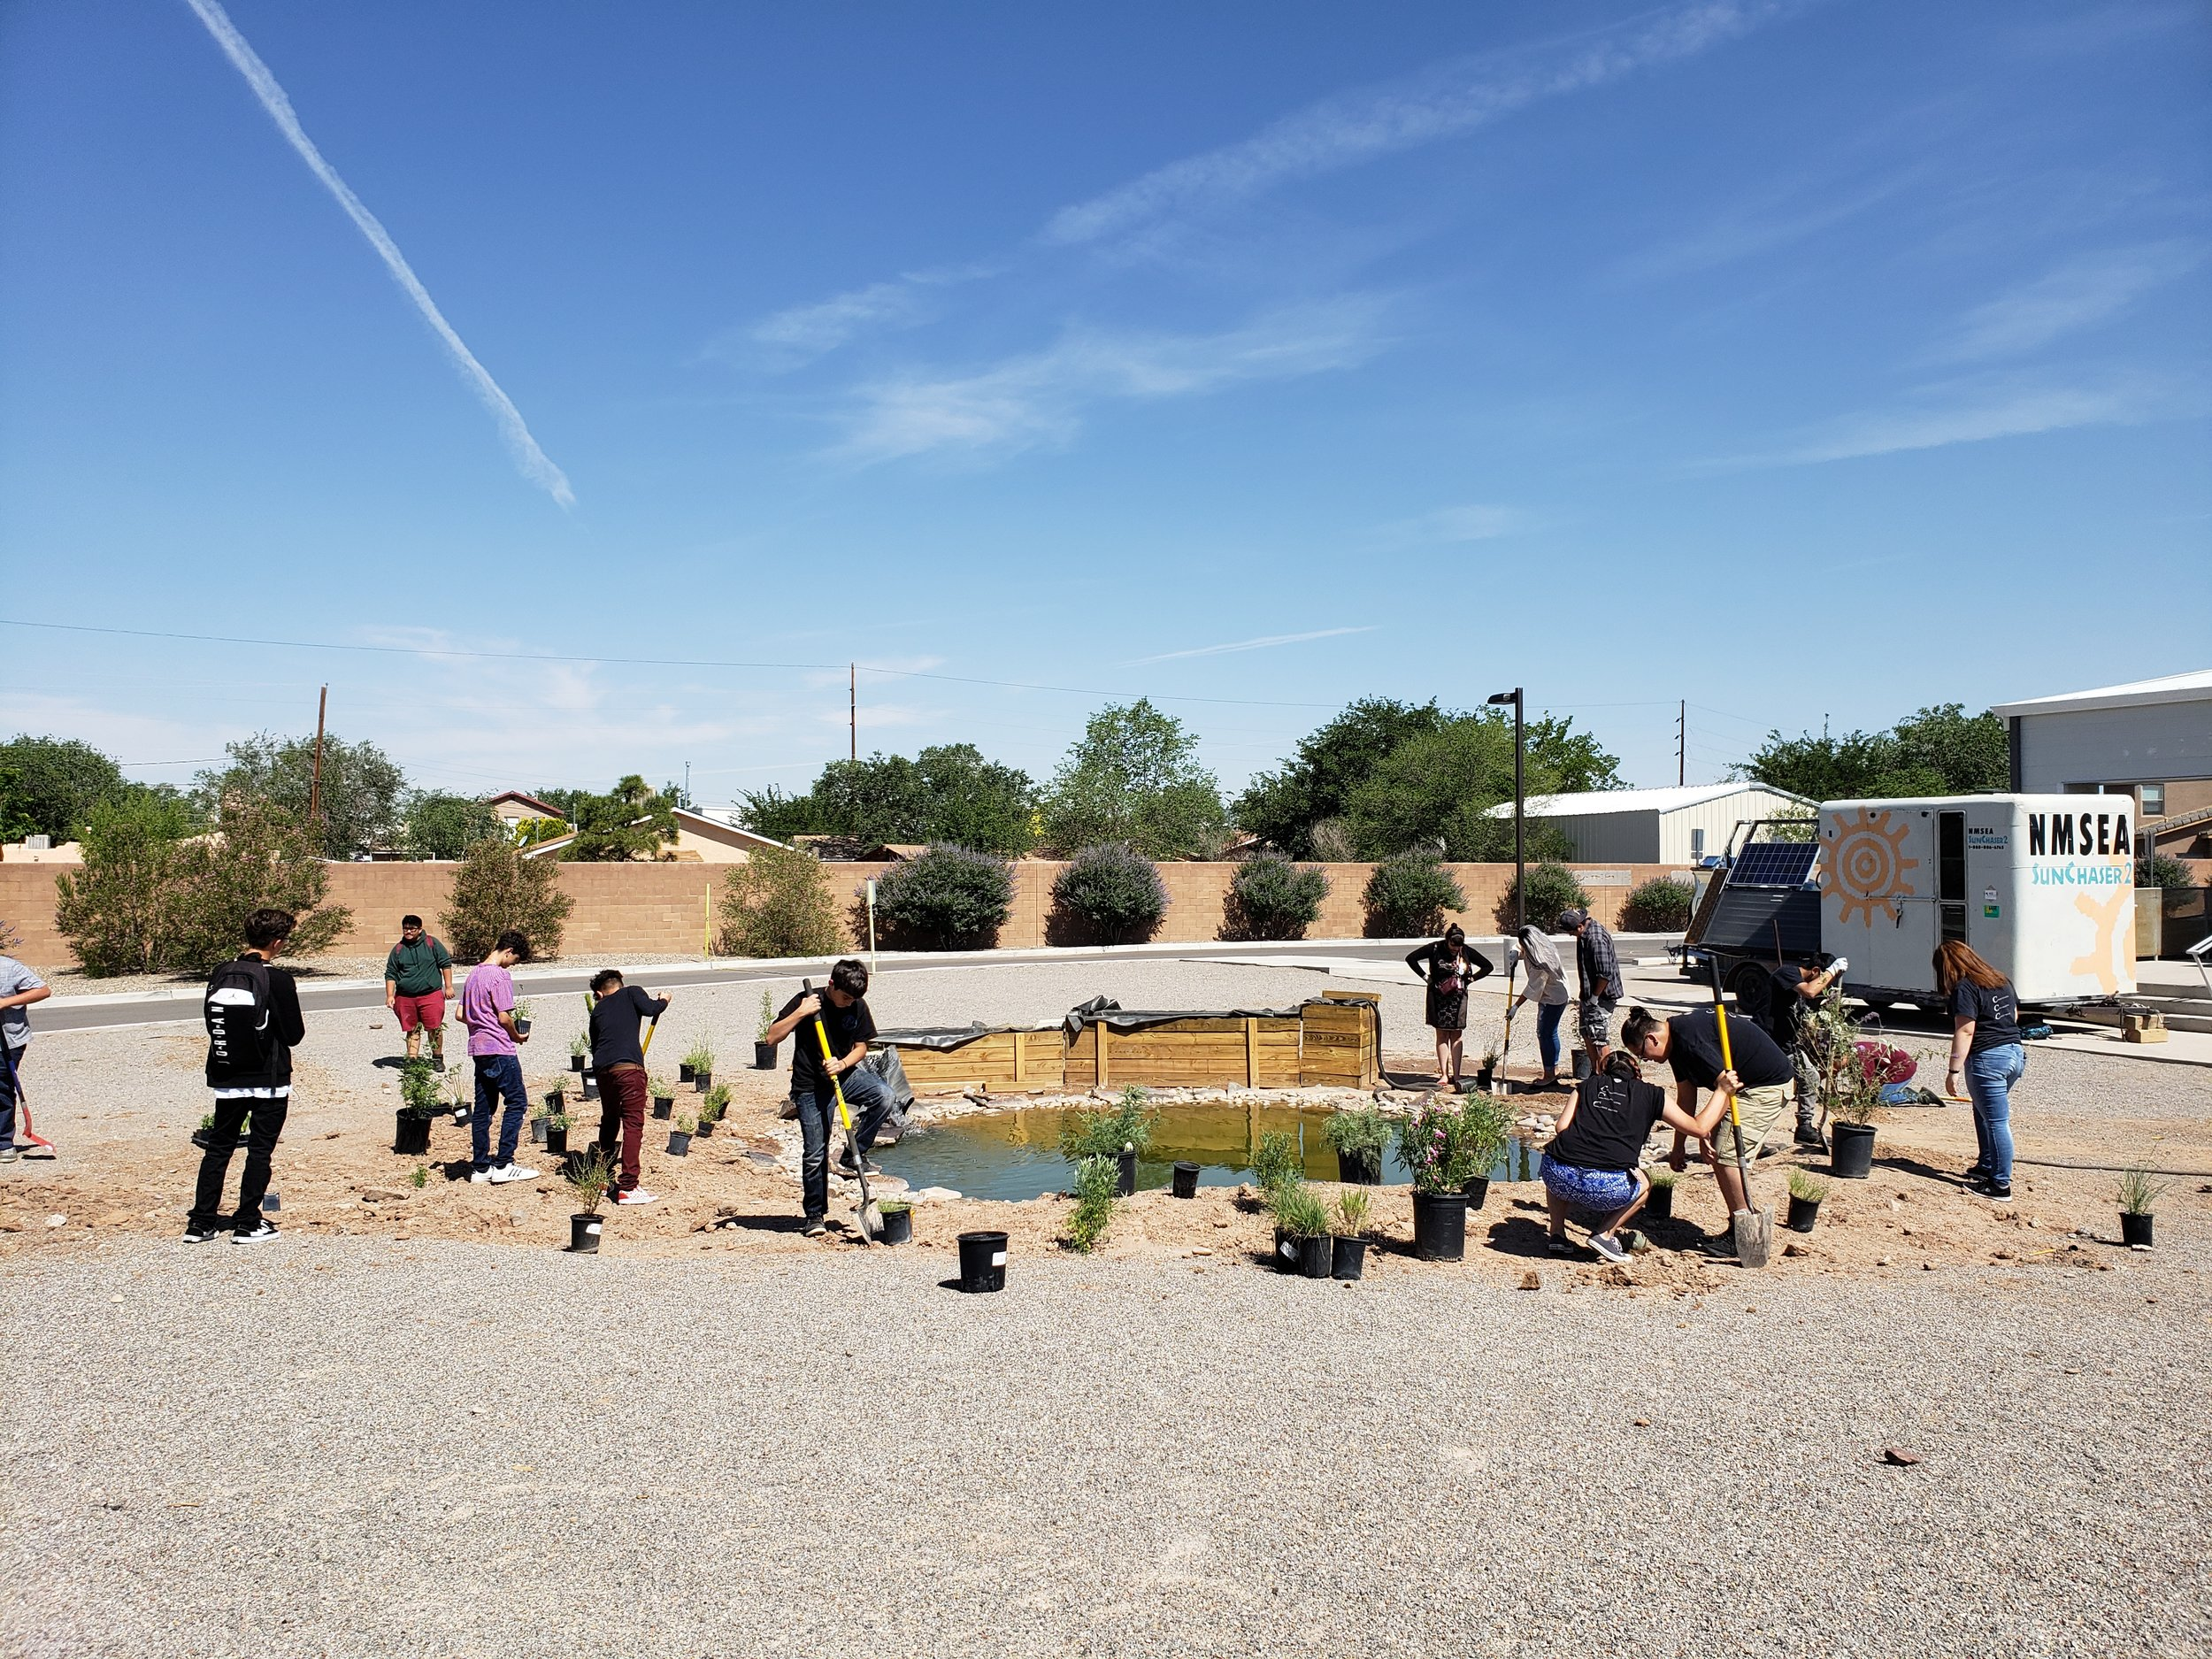 Look at this crew! The kids from ACE high school installed this landscape we designed for them in no time. They even worked on the irrigation system as well. Next week we'll bring in the gravel and take some after pictures.  #southwesthorticulture #horticulture #landscapes #landscaping #landscapedesign #nativeplants #xeriscaping #xeriscape #waterconservation #gardening #albuquerque #newmexico